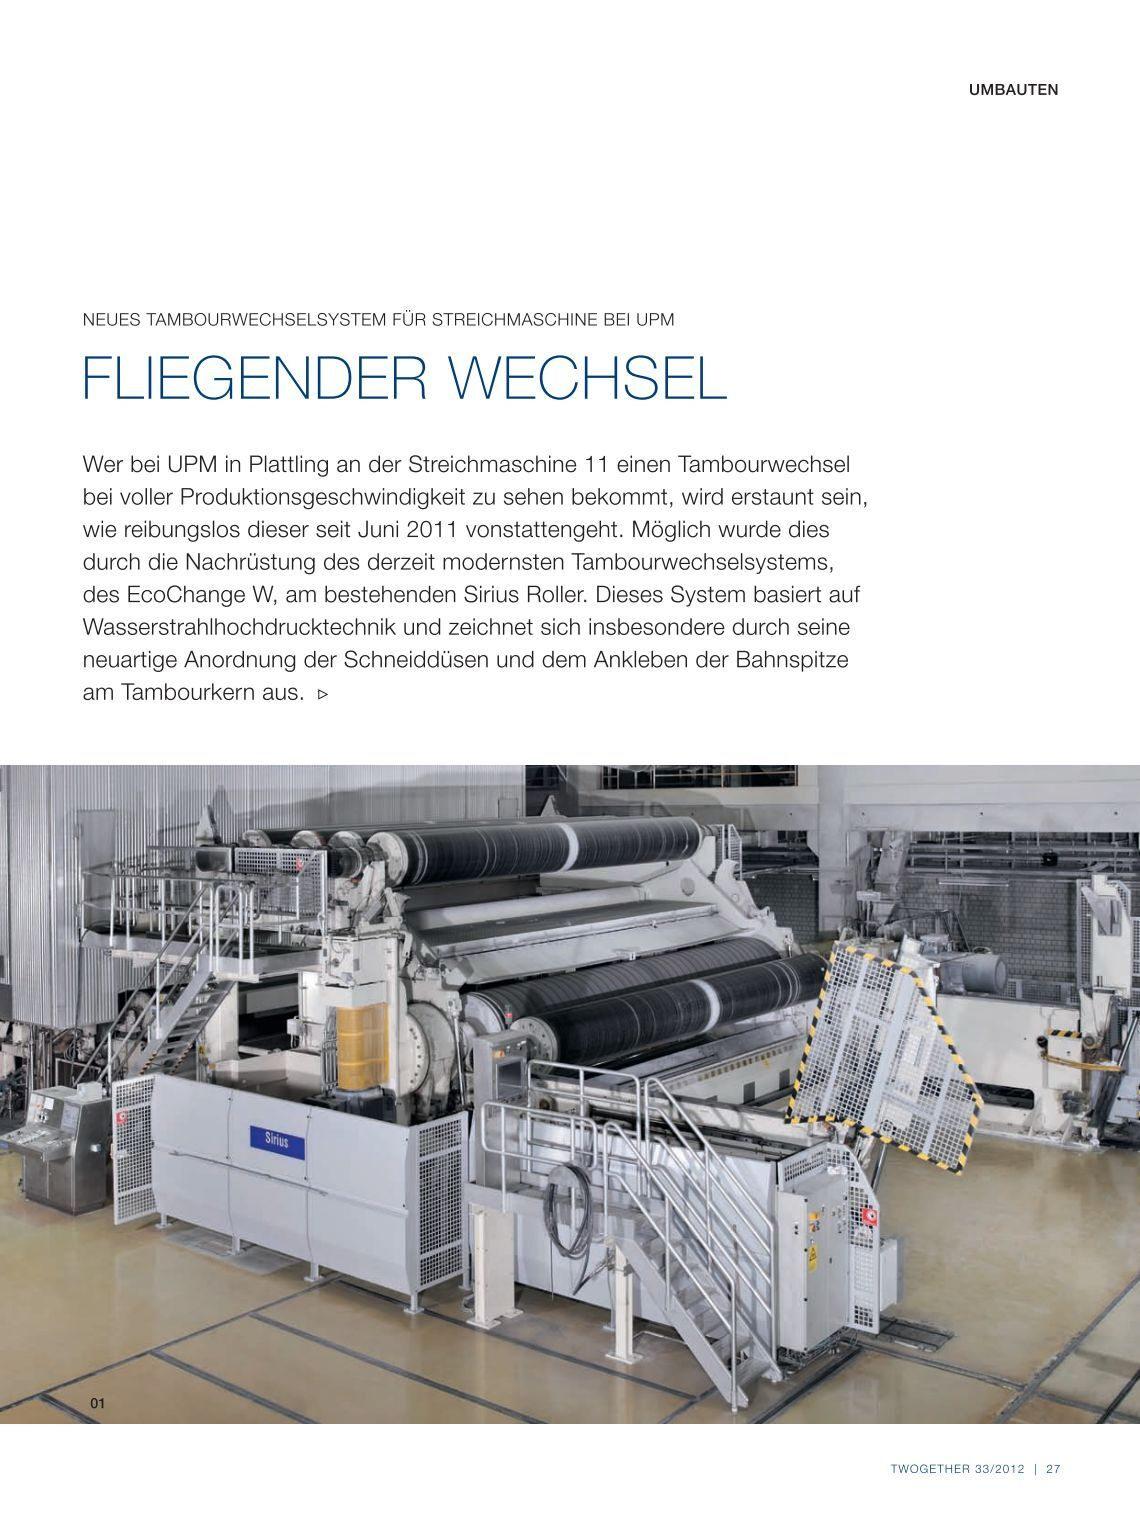 twogether paper technology journal Twogether paper technology journal 3d model of the deaerationfoampump  4000 voith paper vp fes 1113 en 01  t echnical data and graphical.